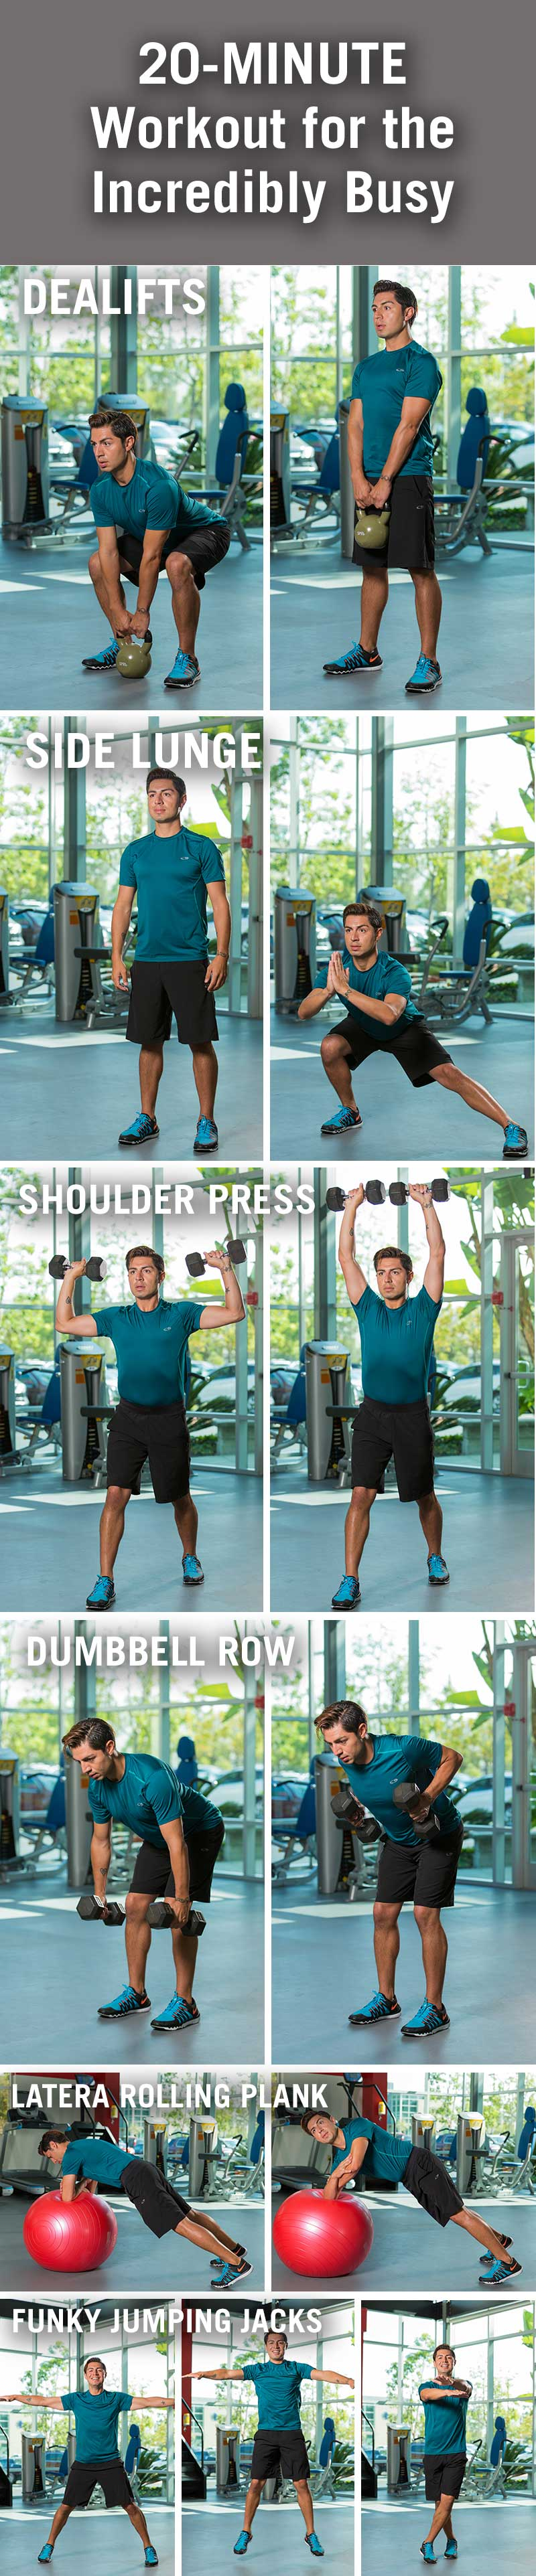 20-Minute Workout